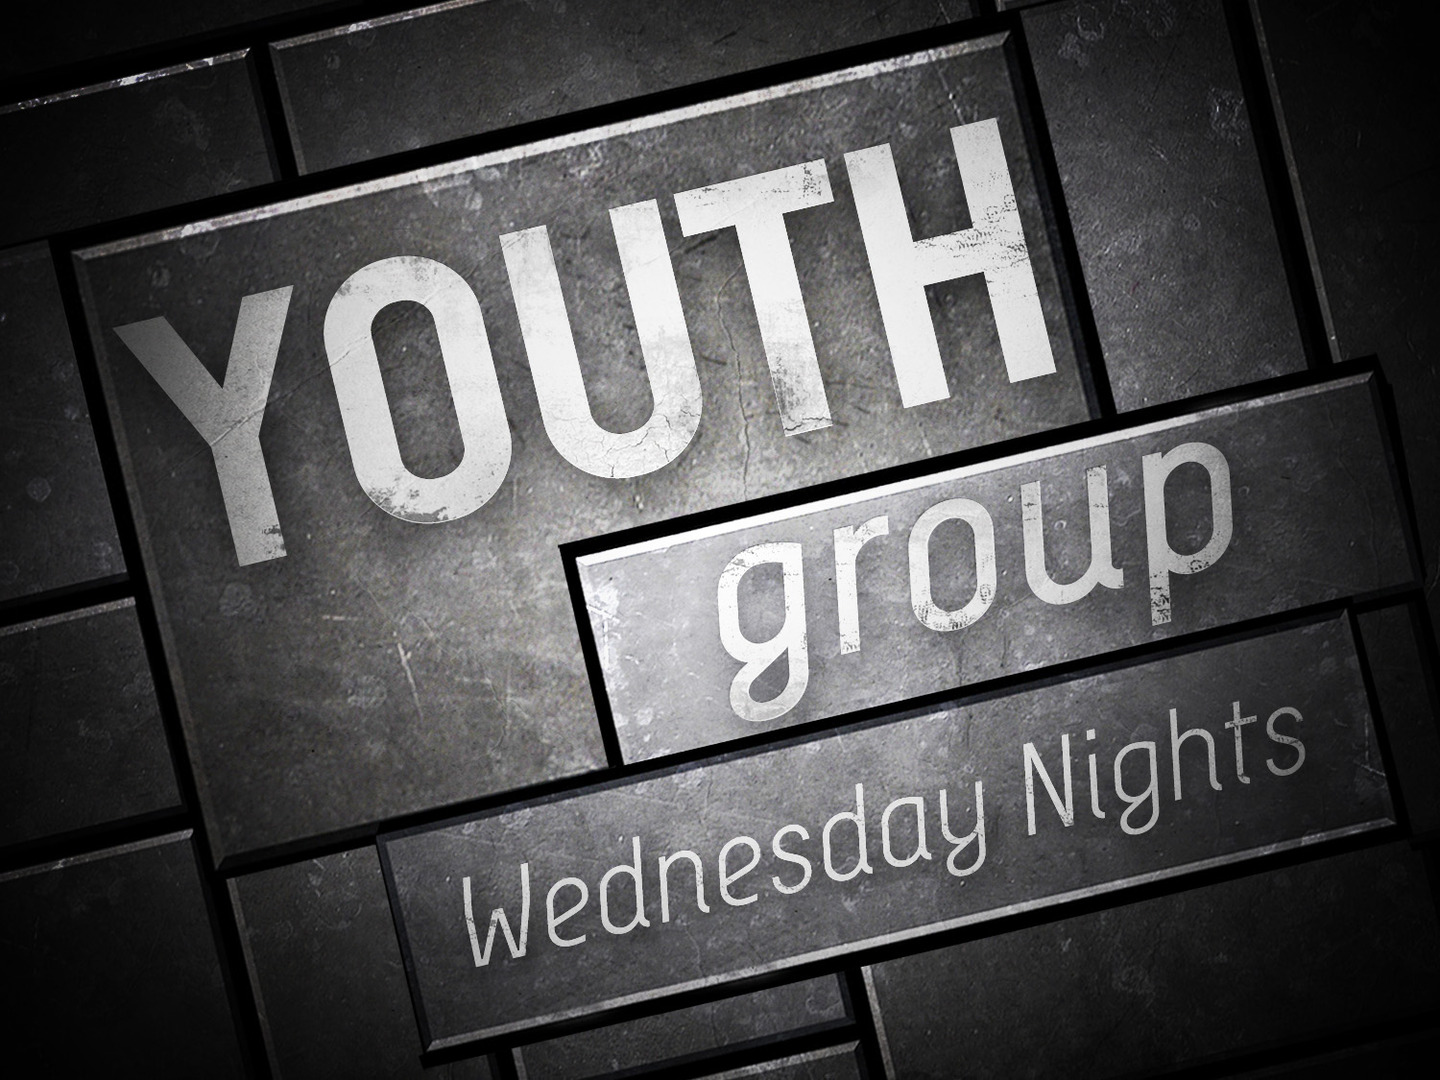 youth_group-title-1-Standard 4x3 image